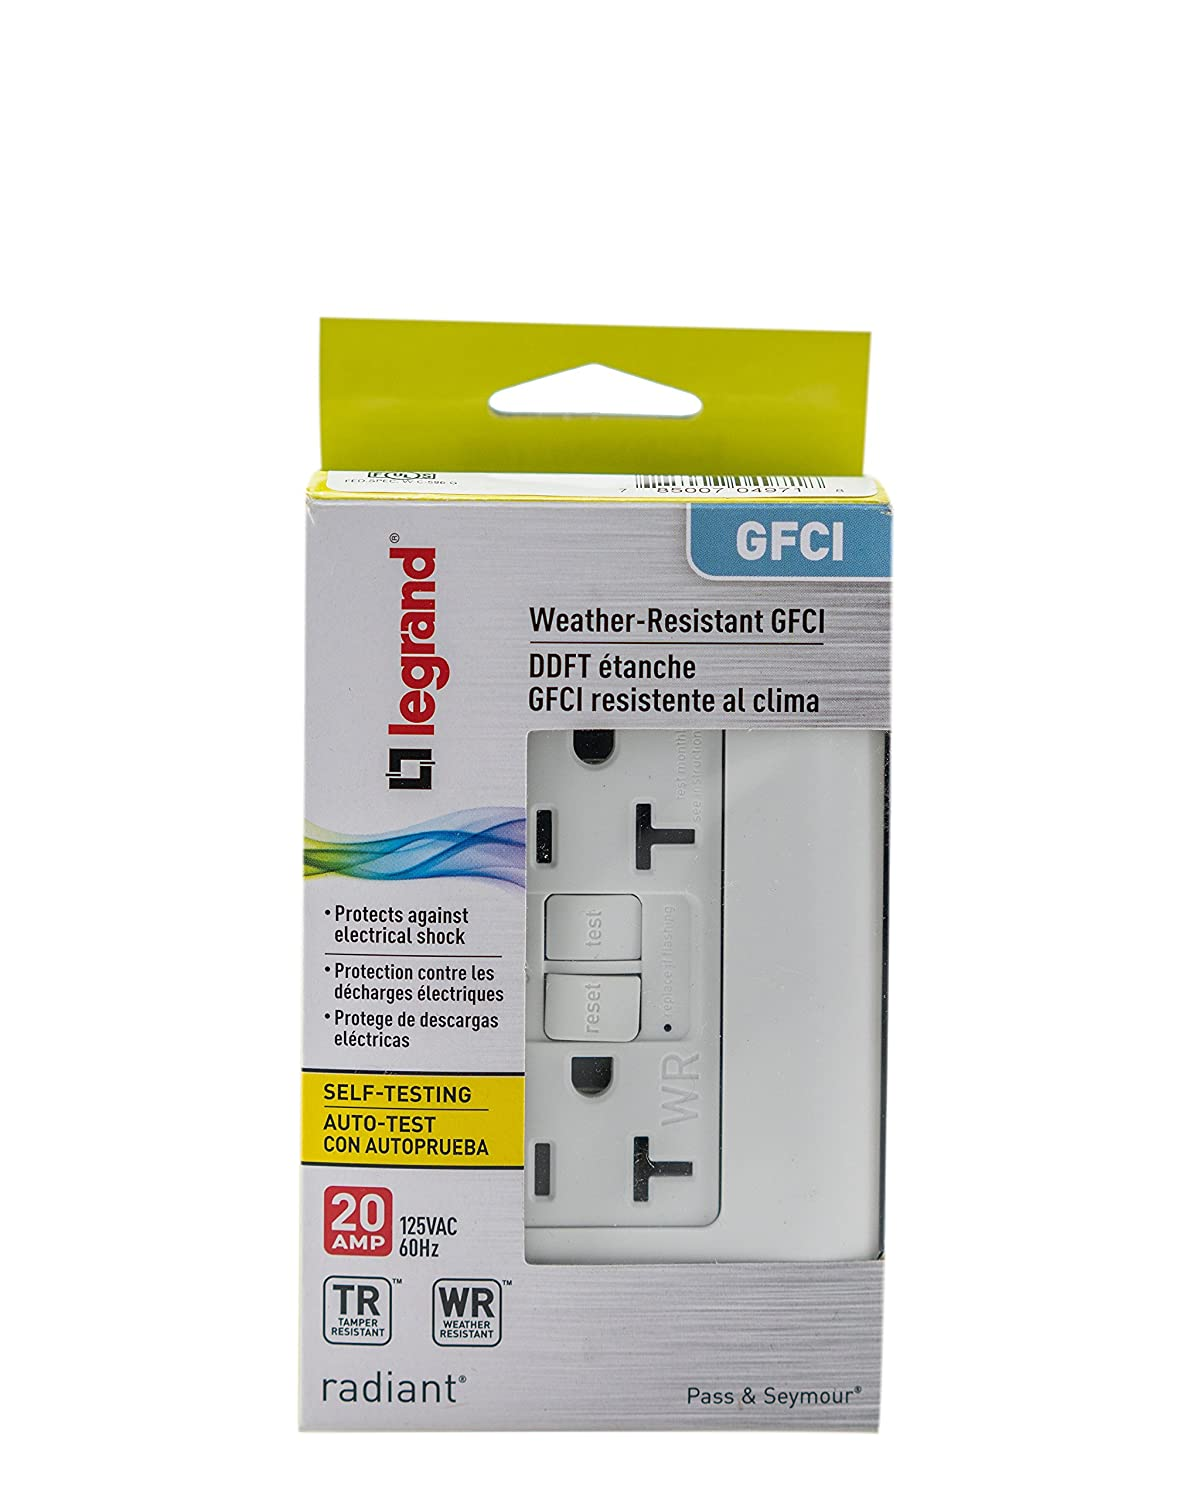 Legrand Pass Seymour Radiant 2097trwrwcc4 20 Amp Tamper Gfci Gfi 15 Resistant Tr Outlet Receptacle Weather Pro Self Test Safety White